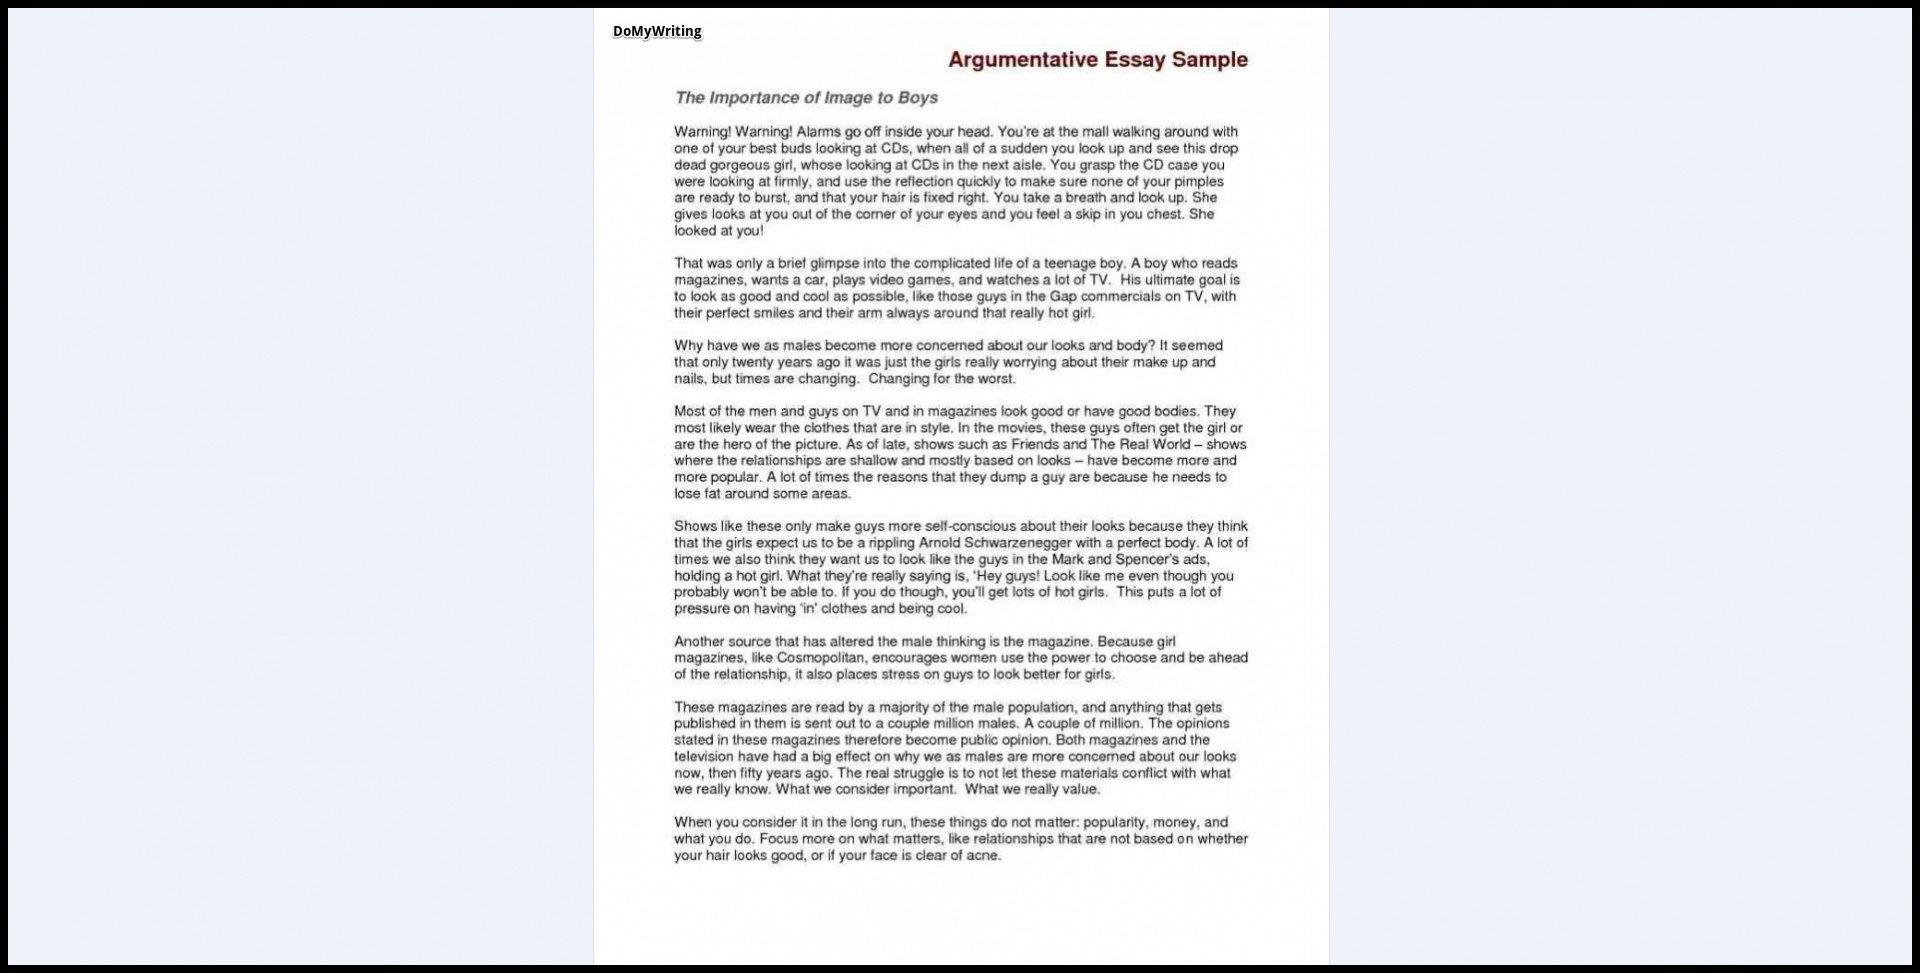 003 Essay Example Argumentative Sample Who Are Rare You Motivates Inspires Examples College 1920